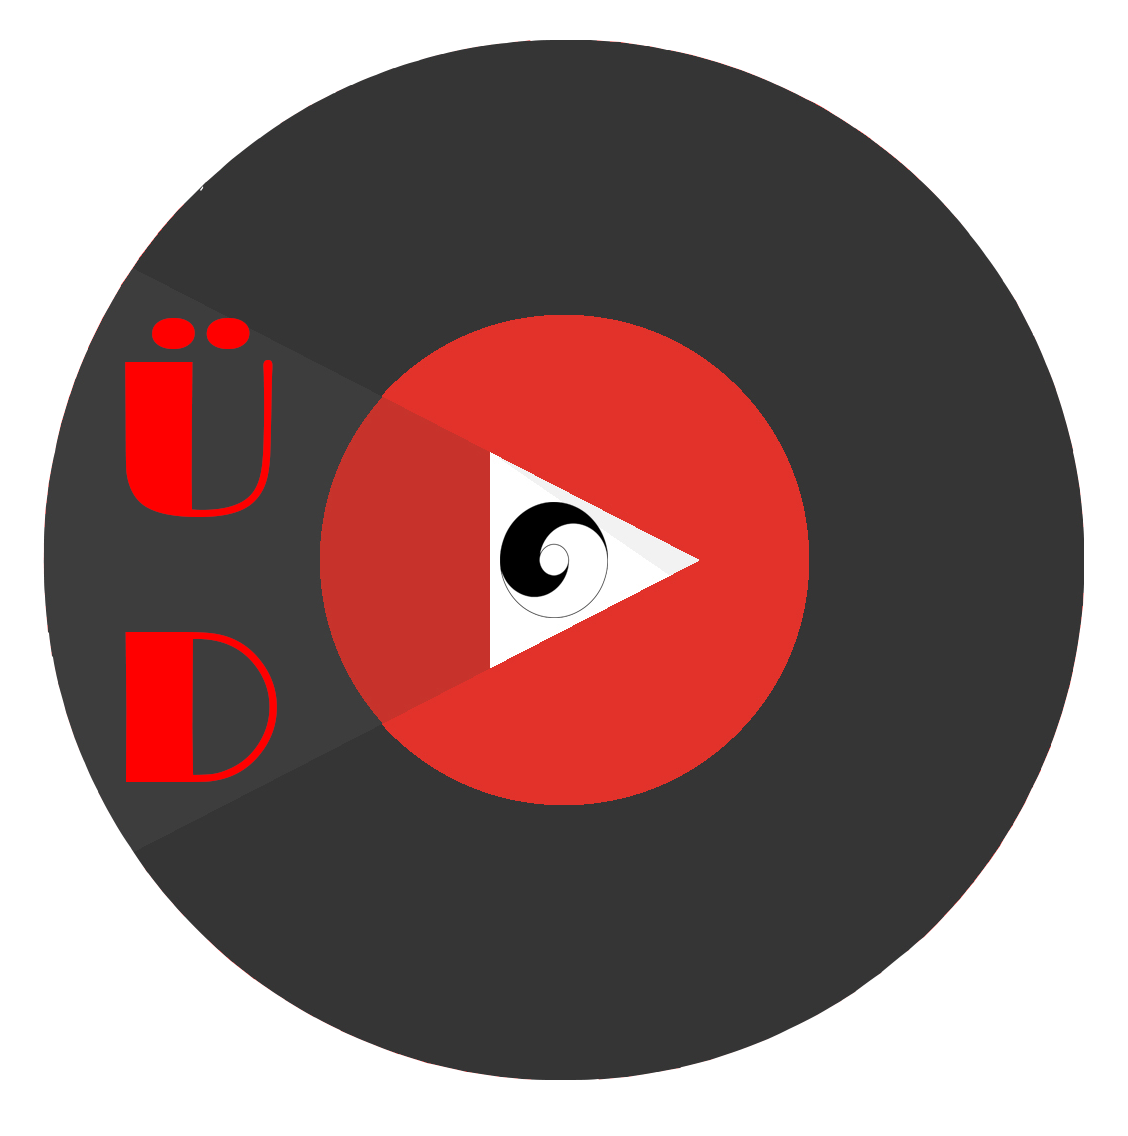 Youtube'da BİZ